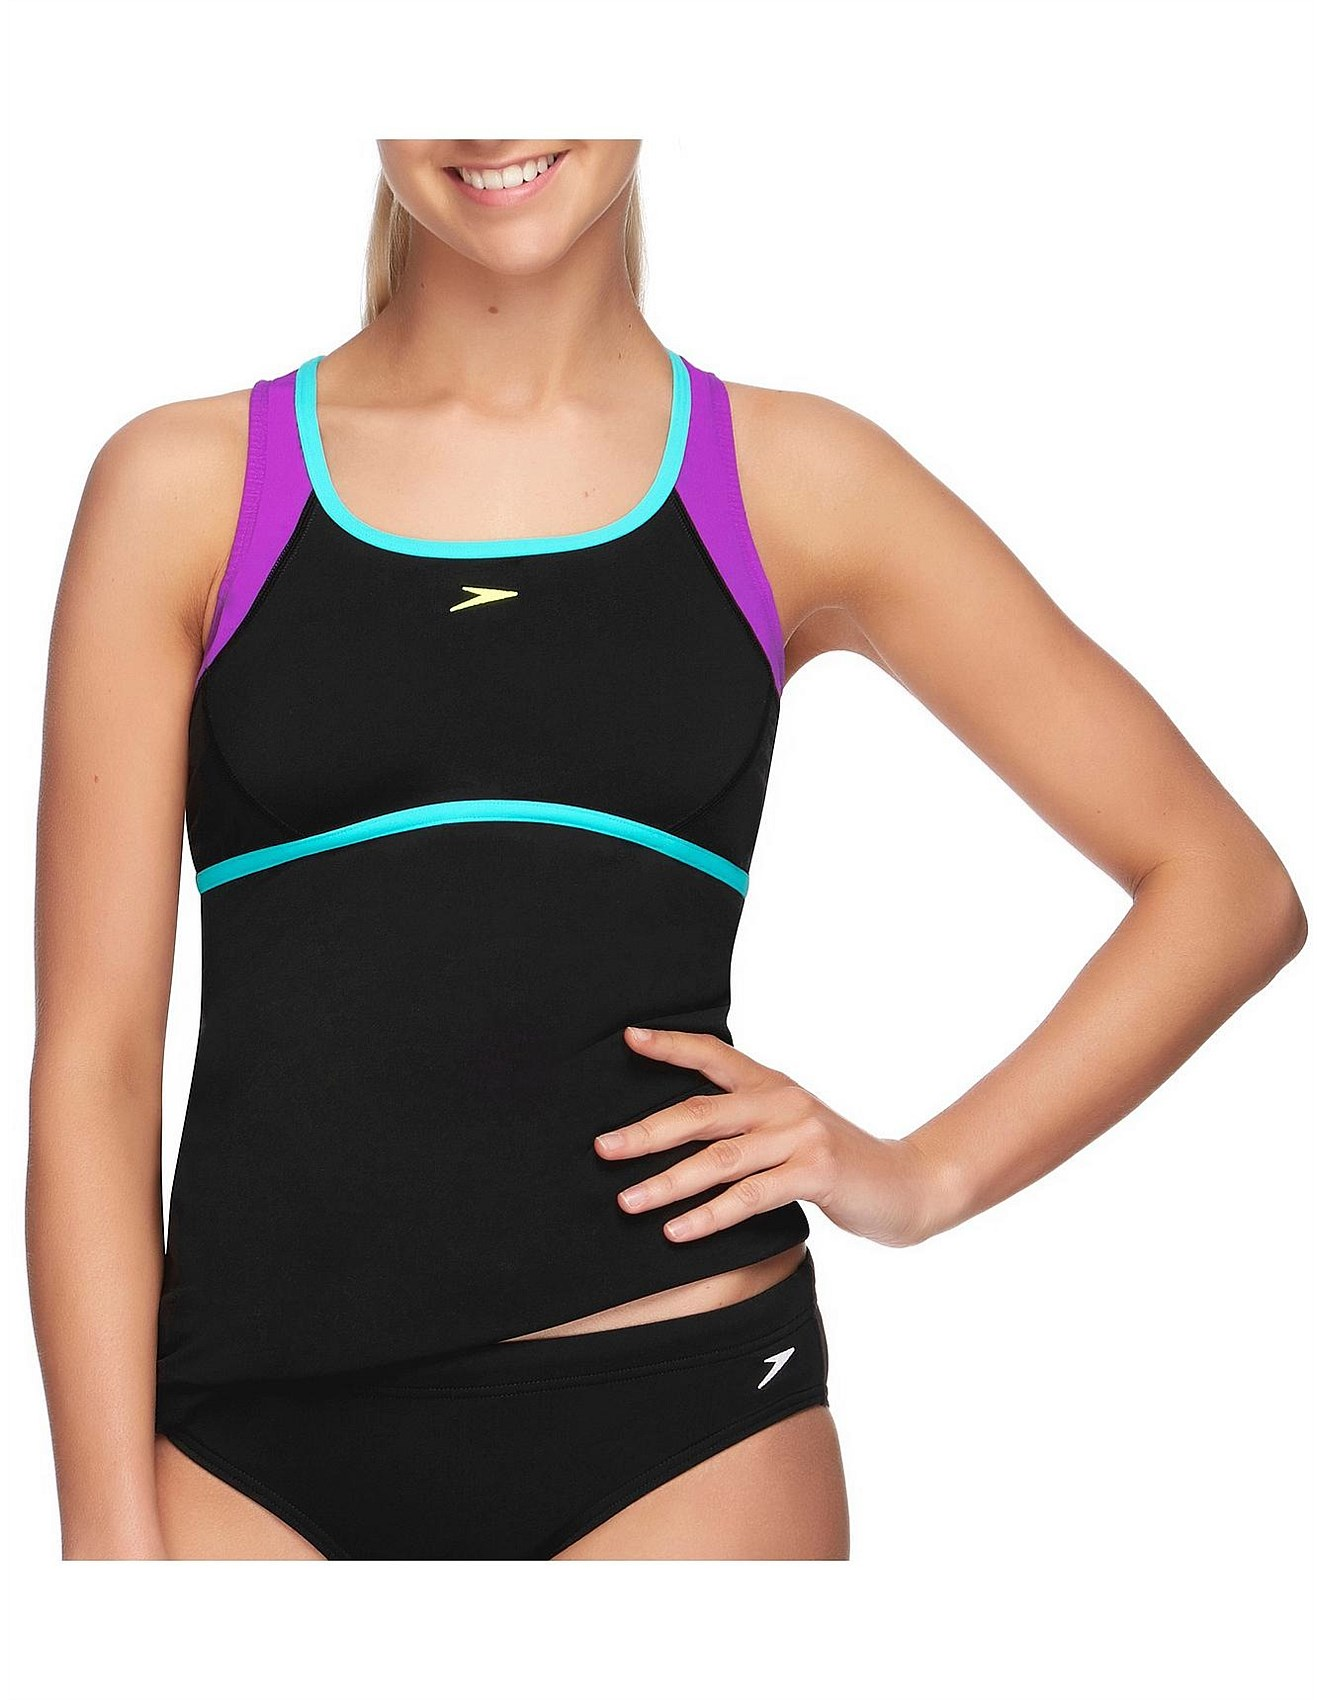 98e53146e45b Swimwear & Bikinis - Cross Trainer Power Tank